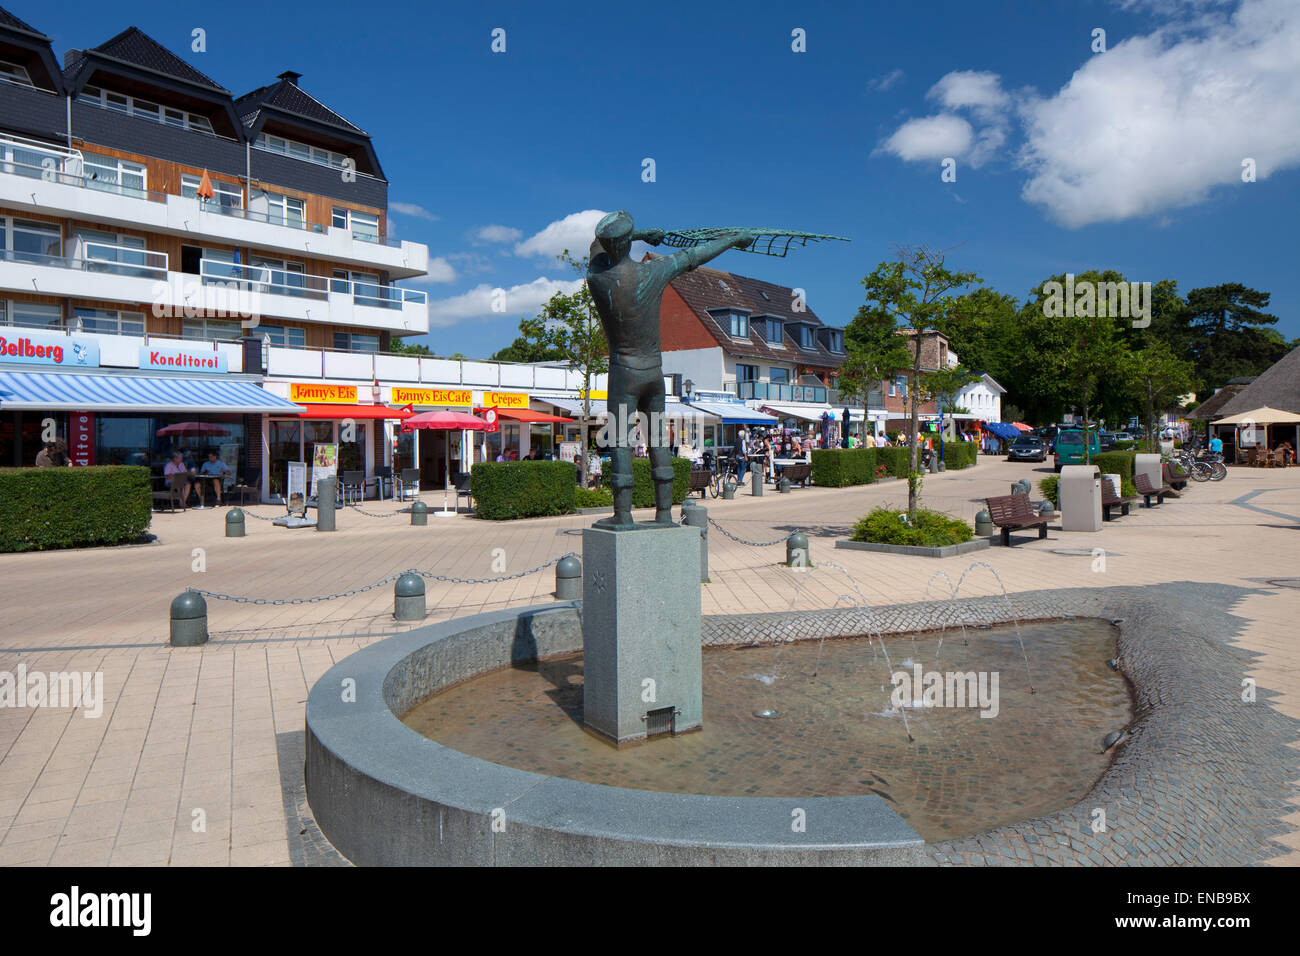 Statue and snack bars along the promenade at the seaside resort Haffkrug, Scharbeutz, Schleswig-Holstein, Germany - Stock Image